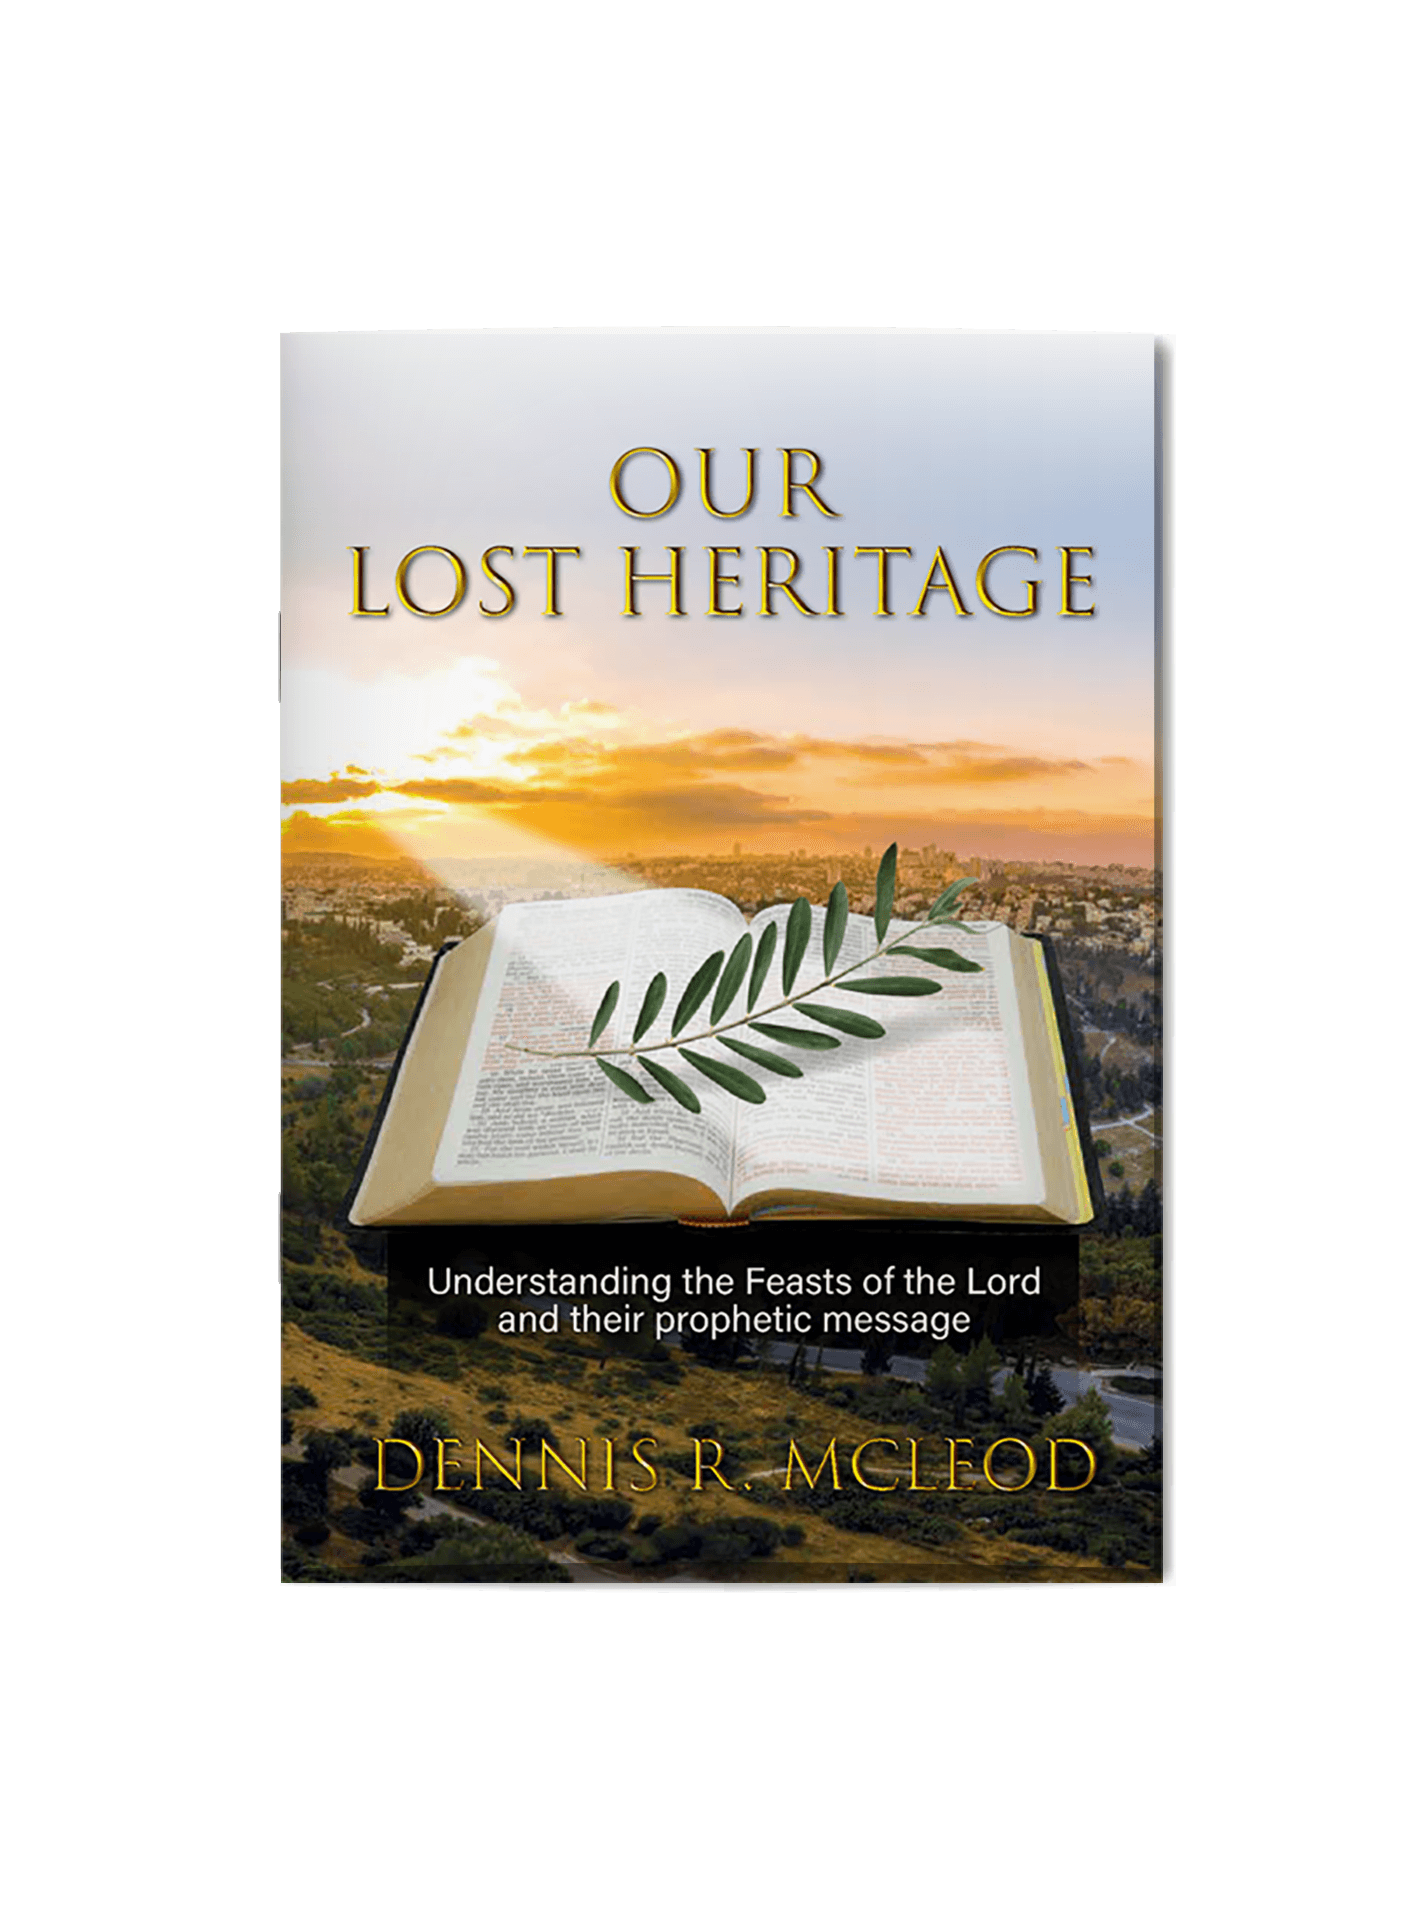 Our Lost Heritage Wild Side Publishing